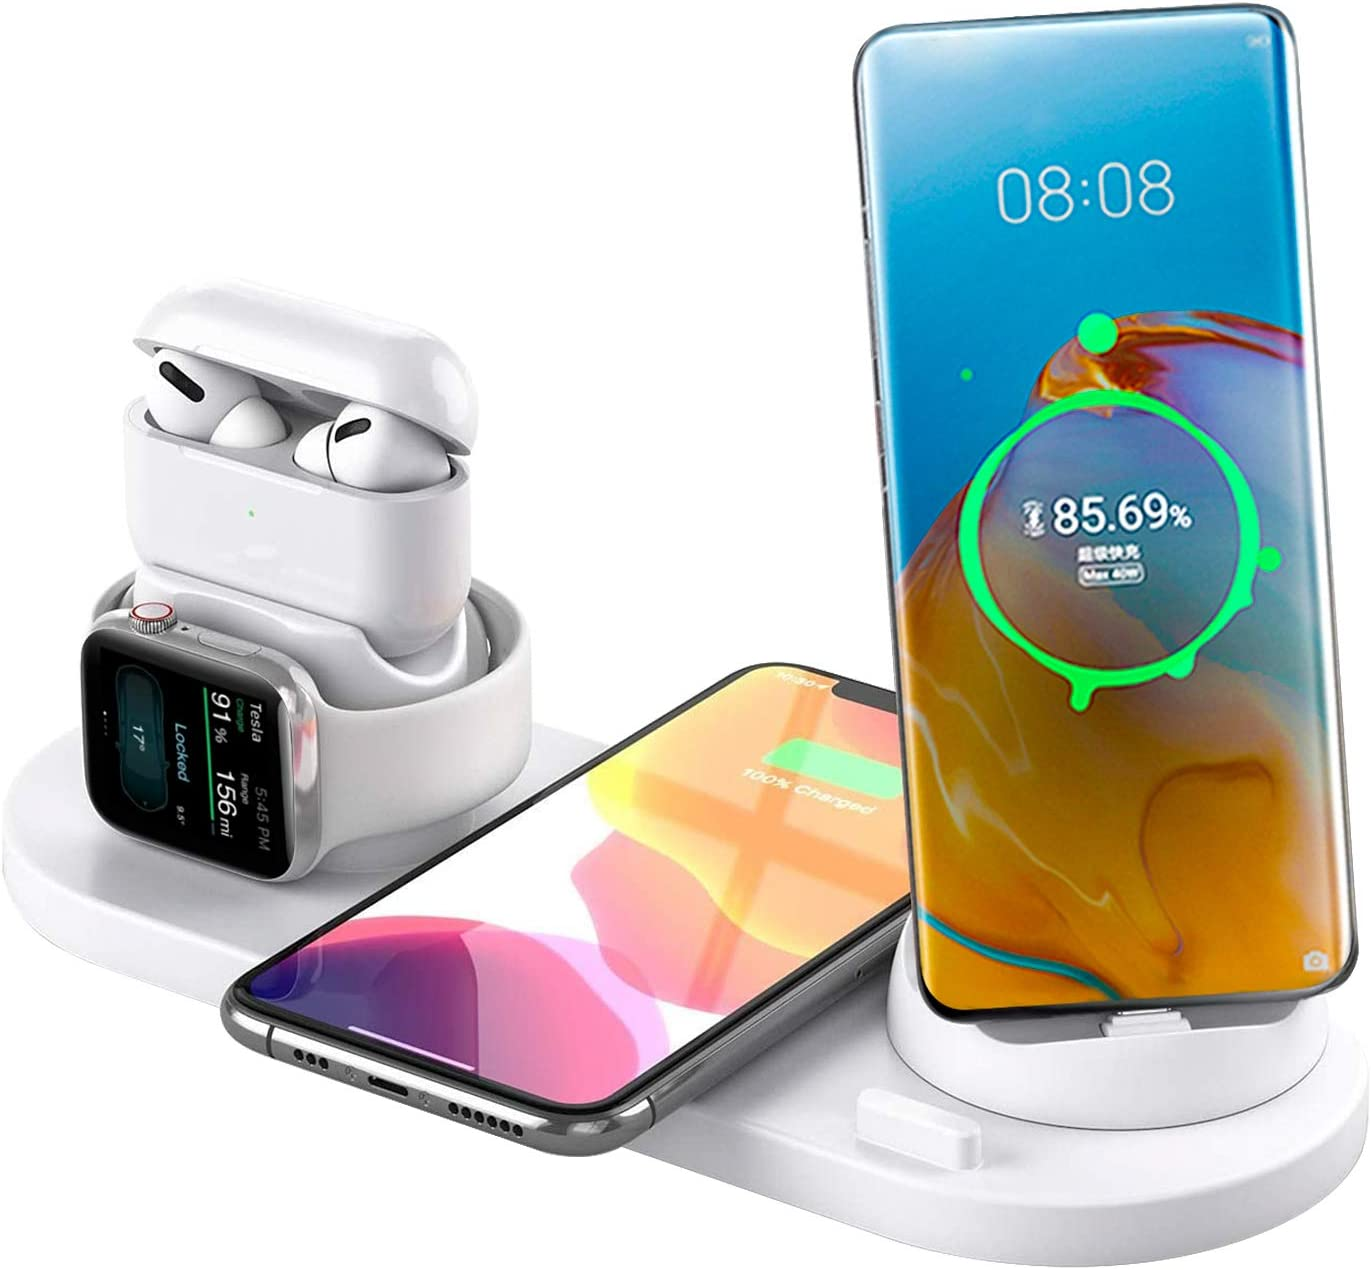 7in 1 Wireless Charger,Desk Charger Organizer Desktop Wireless Charging Station for Multiple Devices Compatible Dock for Airpods/Apple Watch 6/5/iPhone SE/11 Pro/XS/XR/Xs Plus/Samsung Adapter (White)